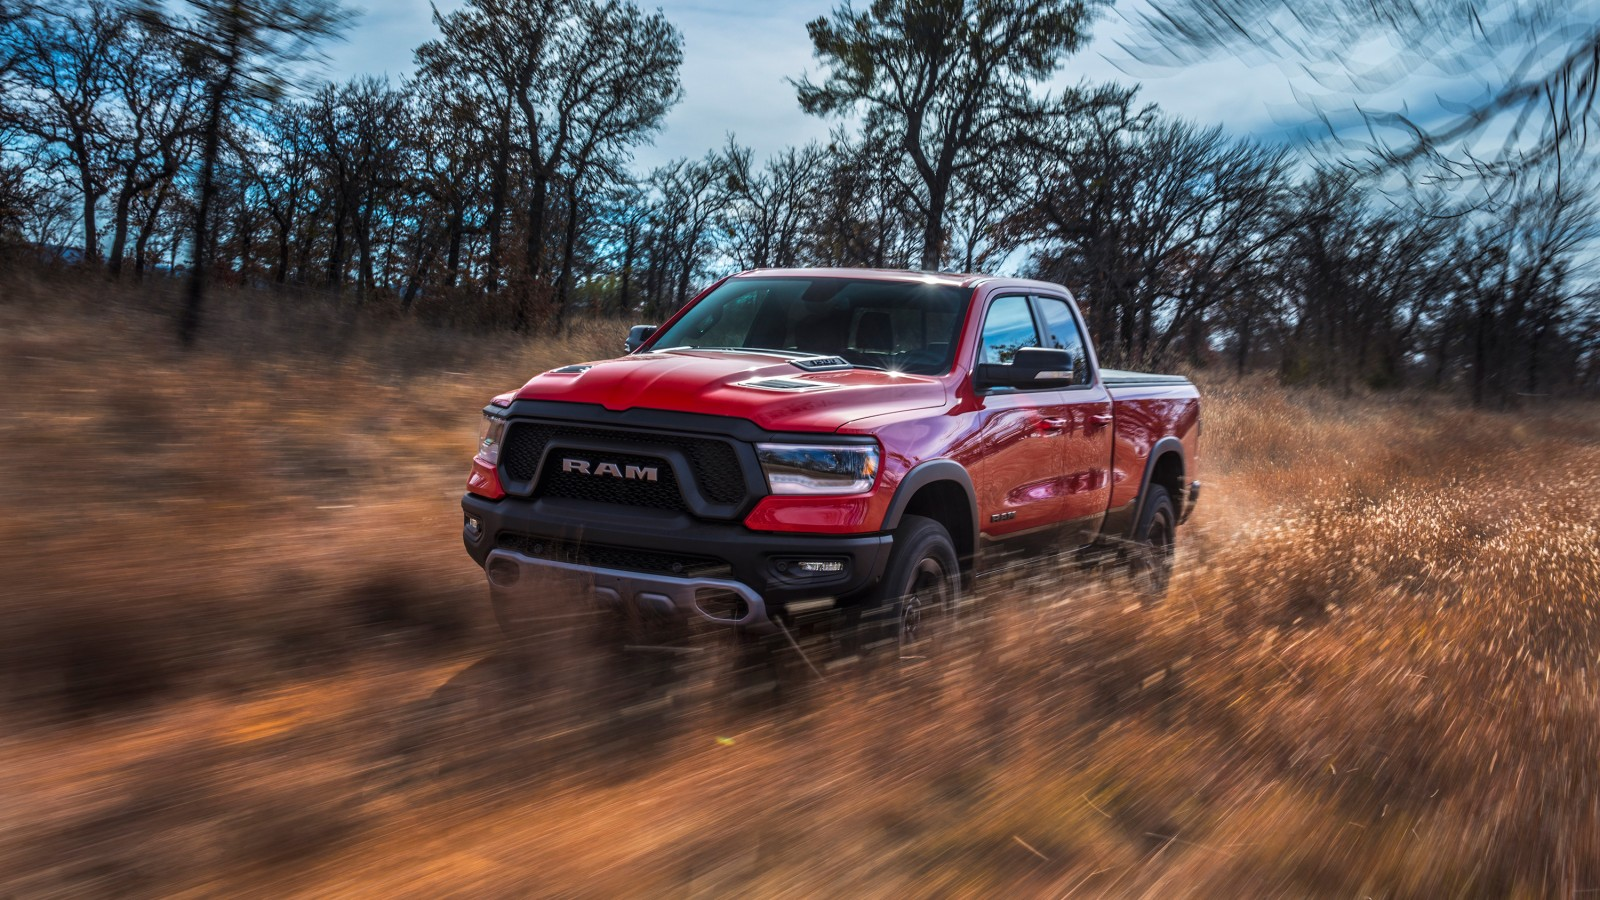 2019 Ram 1500 Rebel Quad Cab 2 Wallpaper | HD Car Wallpapers | ID #9407